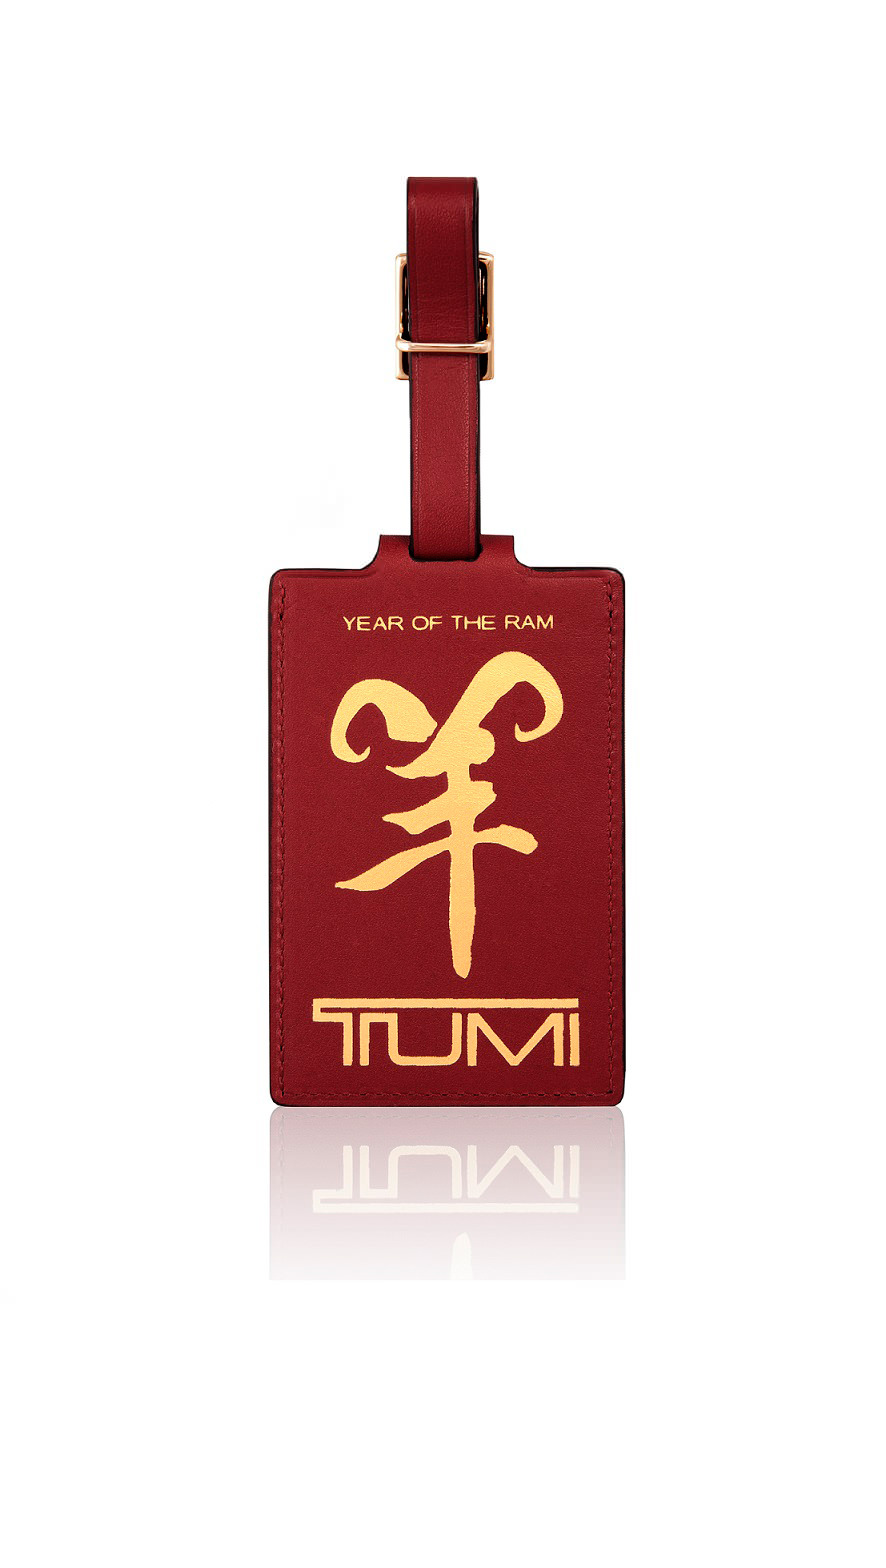 Year of the Ram luggage tag